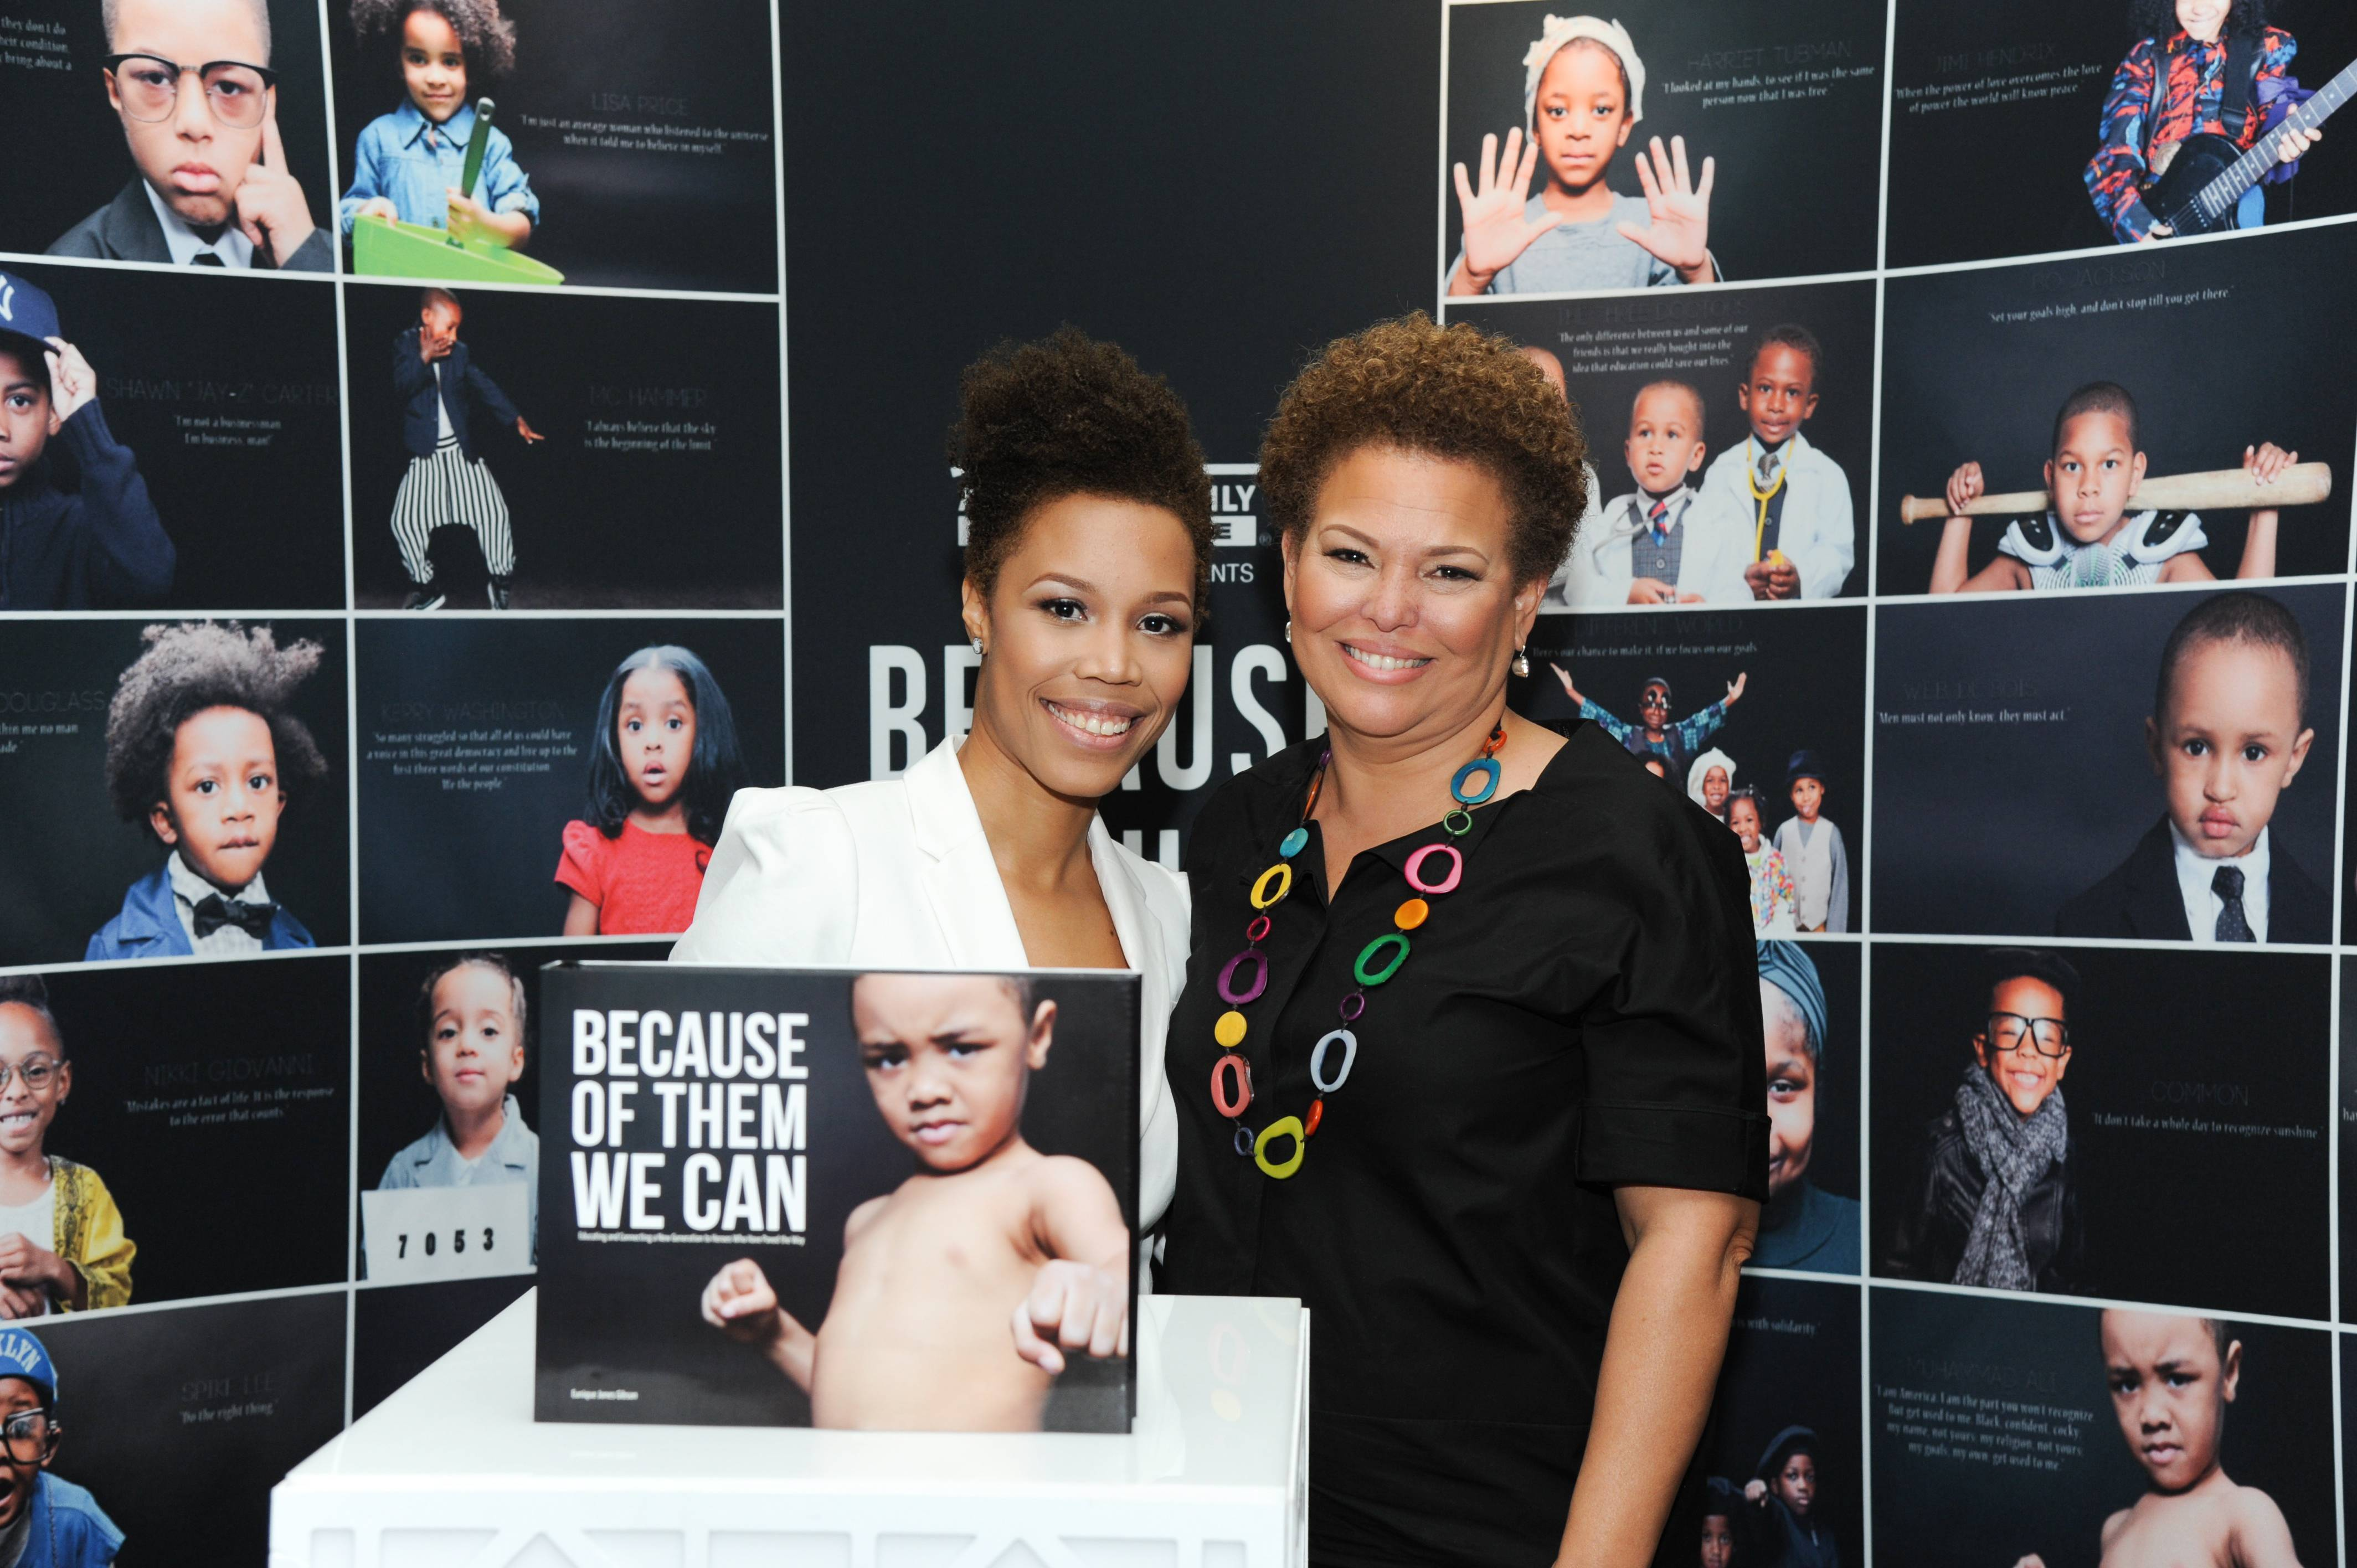 """Eunique Jones, Debra L. Lee - Eunique Jones launched the campaign after her second son was born and was initially inspired by Trayvon Martin's story. """"I began to reflect on my sons and their promising future ? specifically the opportunities they could pursue as a result of the progress and achievements made by individuals past and present. I also thought about the responsibility and, at times, the fear I carry as a mother raising Black boys.""""   Here, BET's own Debra Lee takes a look through Jones' Dream Wall and poses with the creator.  (Photo: Vladimir Banjanac for BET)"""